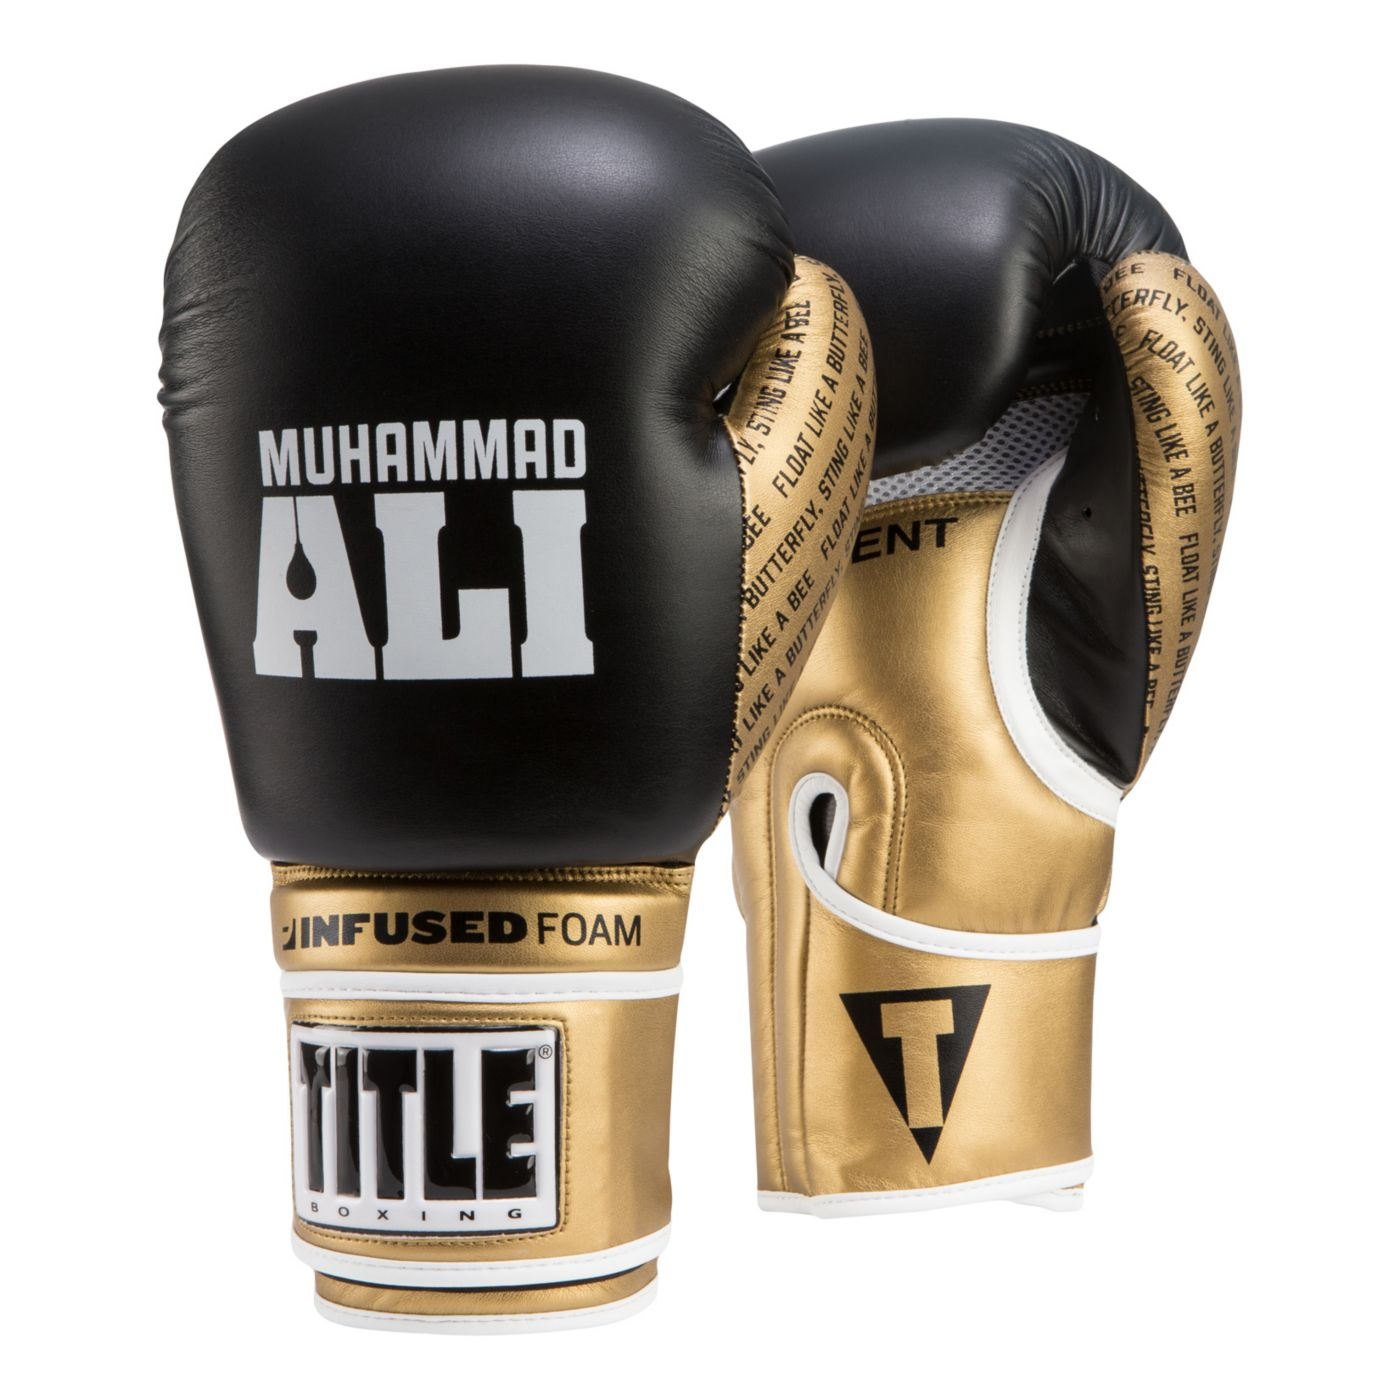 TITLE Muhammad Ali Training Gloves with Infused Foam